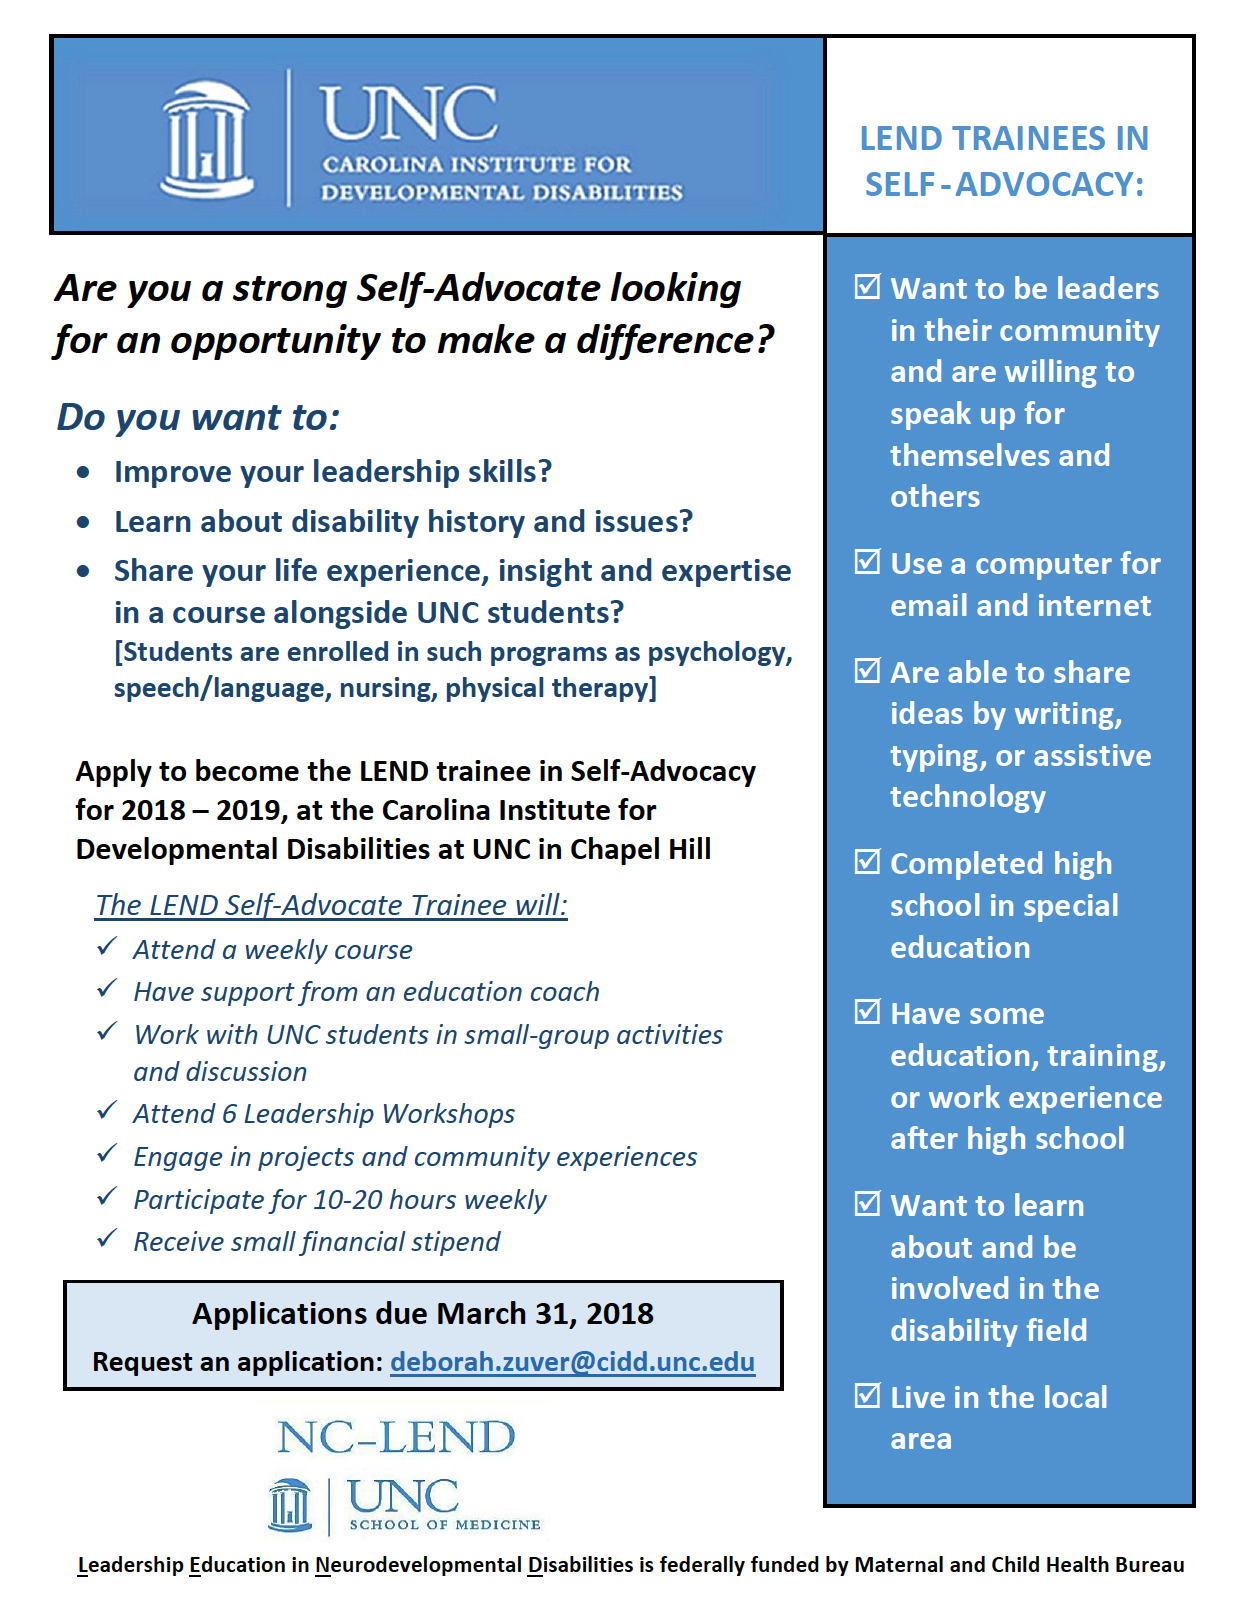 LEND Self-Advocate Trainee Applications Now Open for 2018